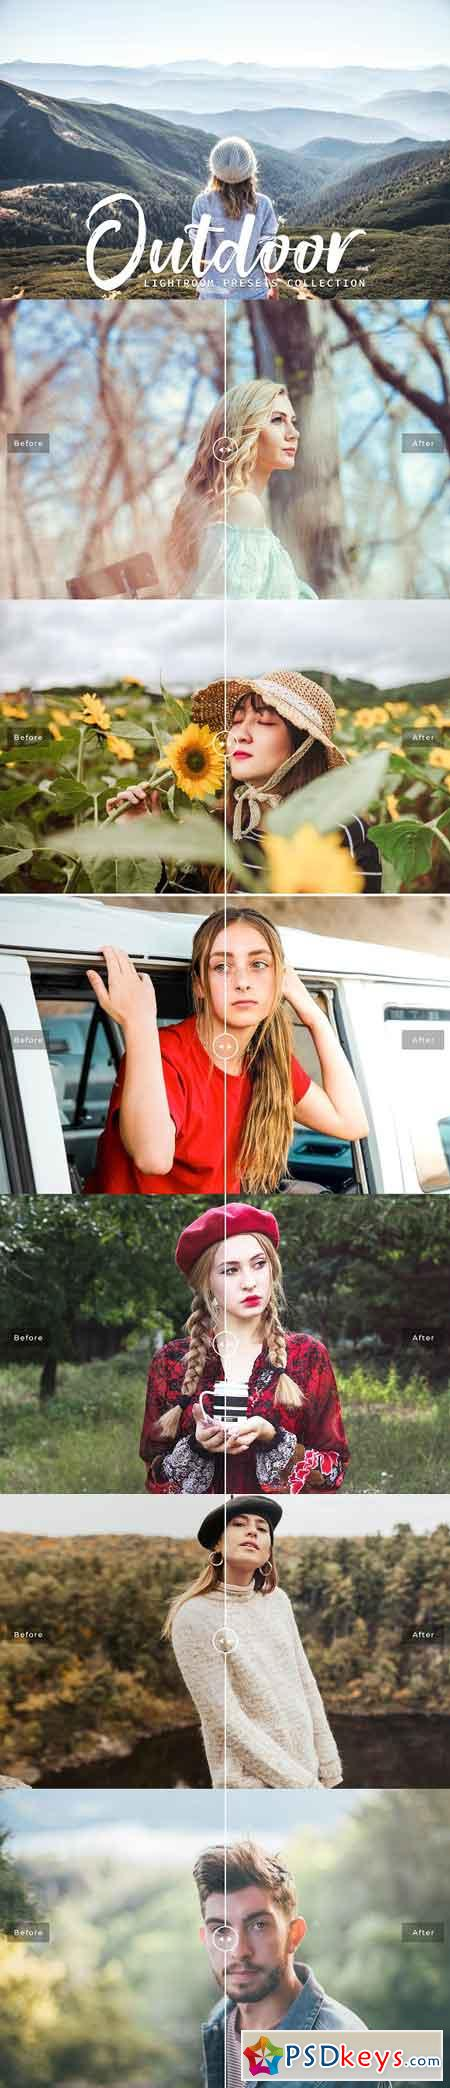 Outdoor Lightroom Presets Collection 3132576